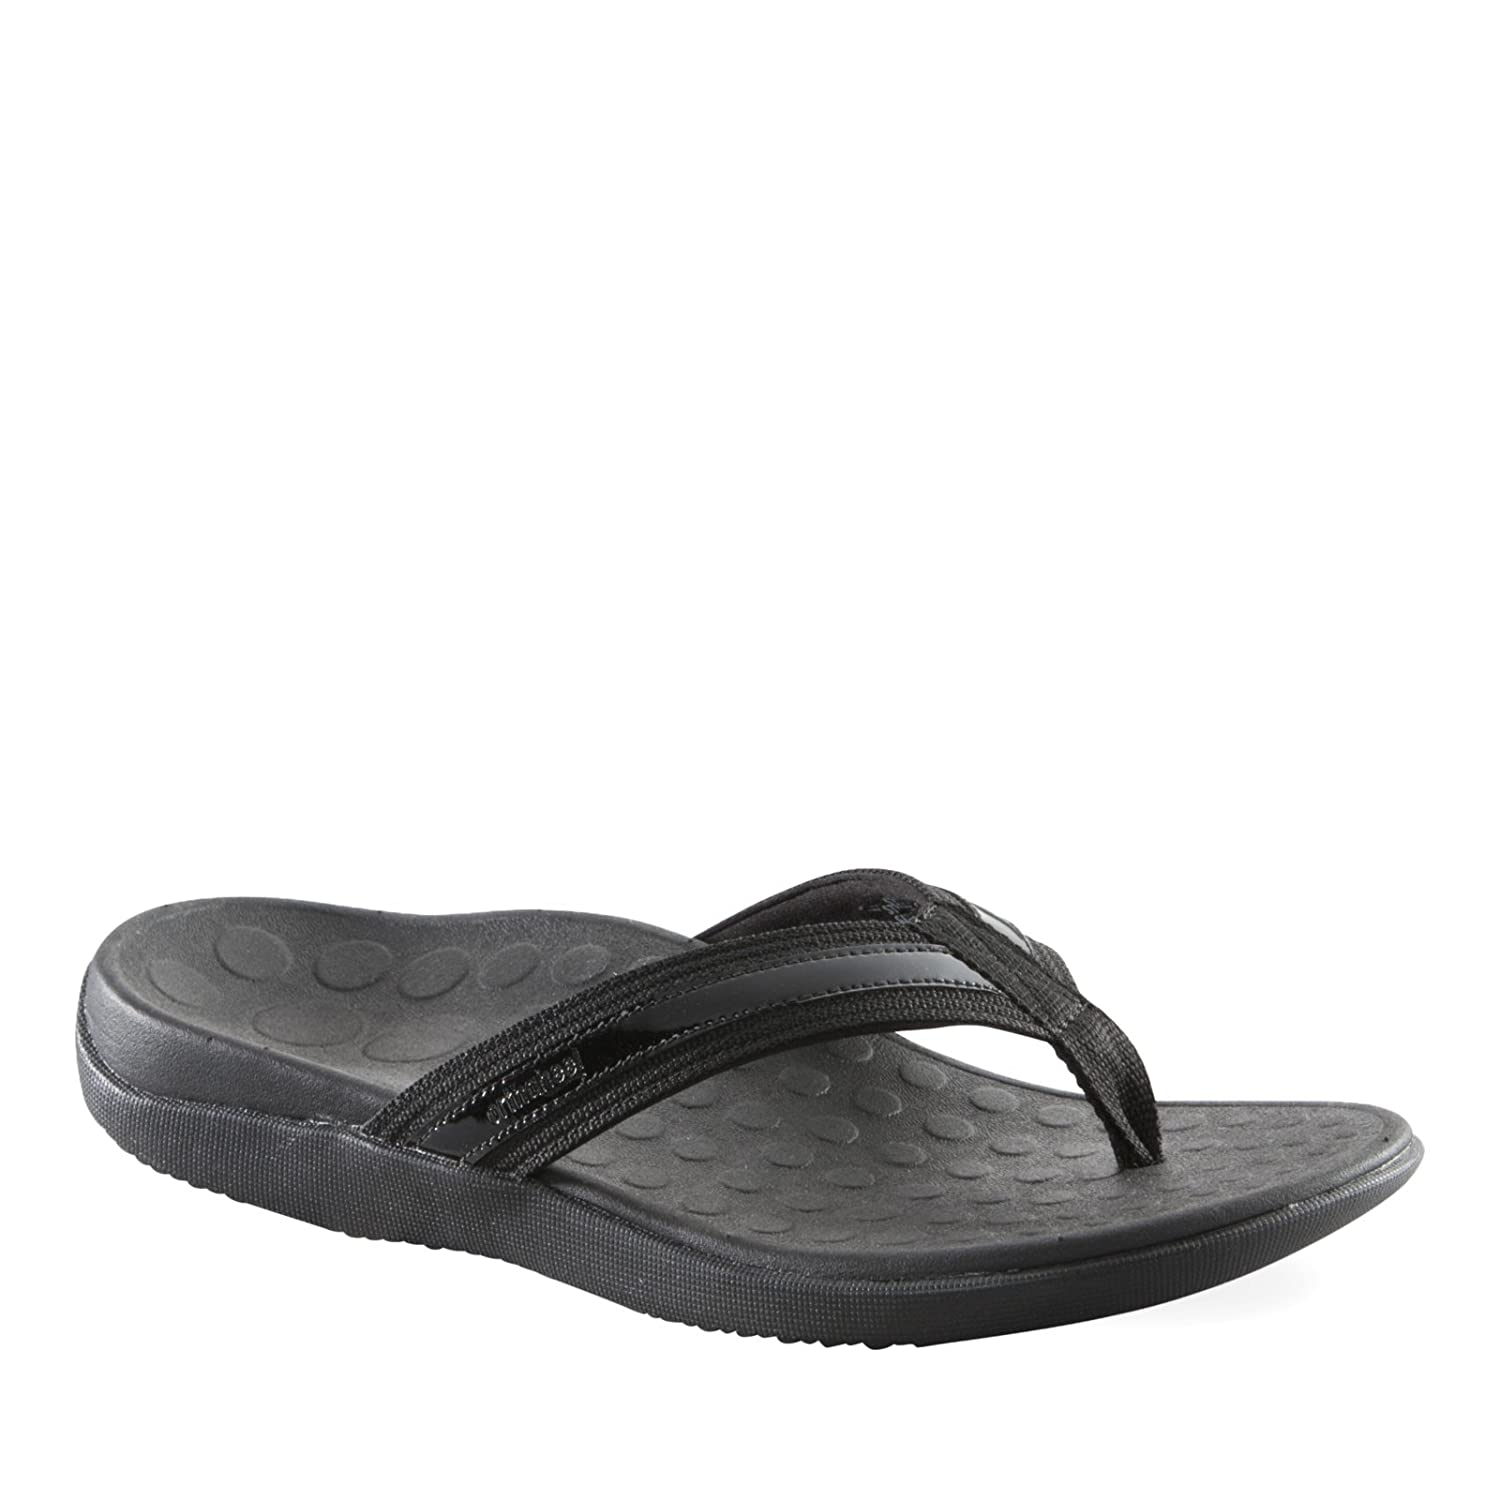 b9f2886db22e Vionic Women s with Orthaheel Black Tide Sandals UK 7 EU 40 US 9   Amazon.co.uk  Shoes   Bags